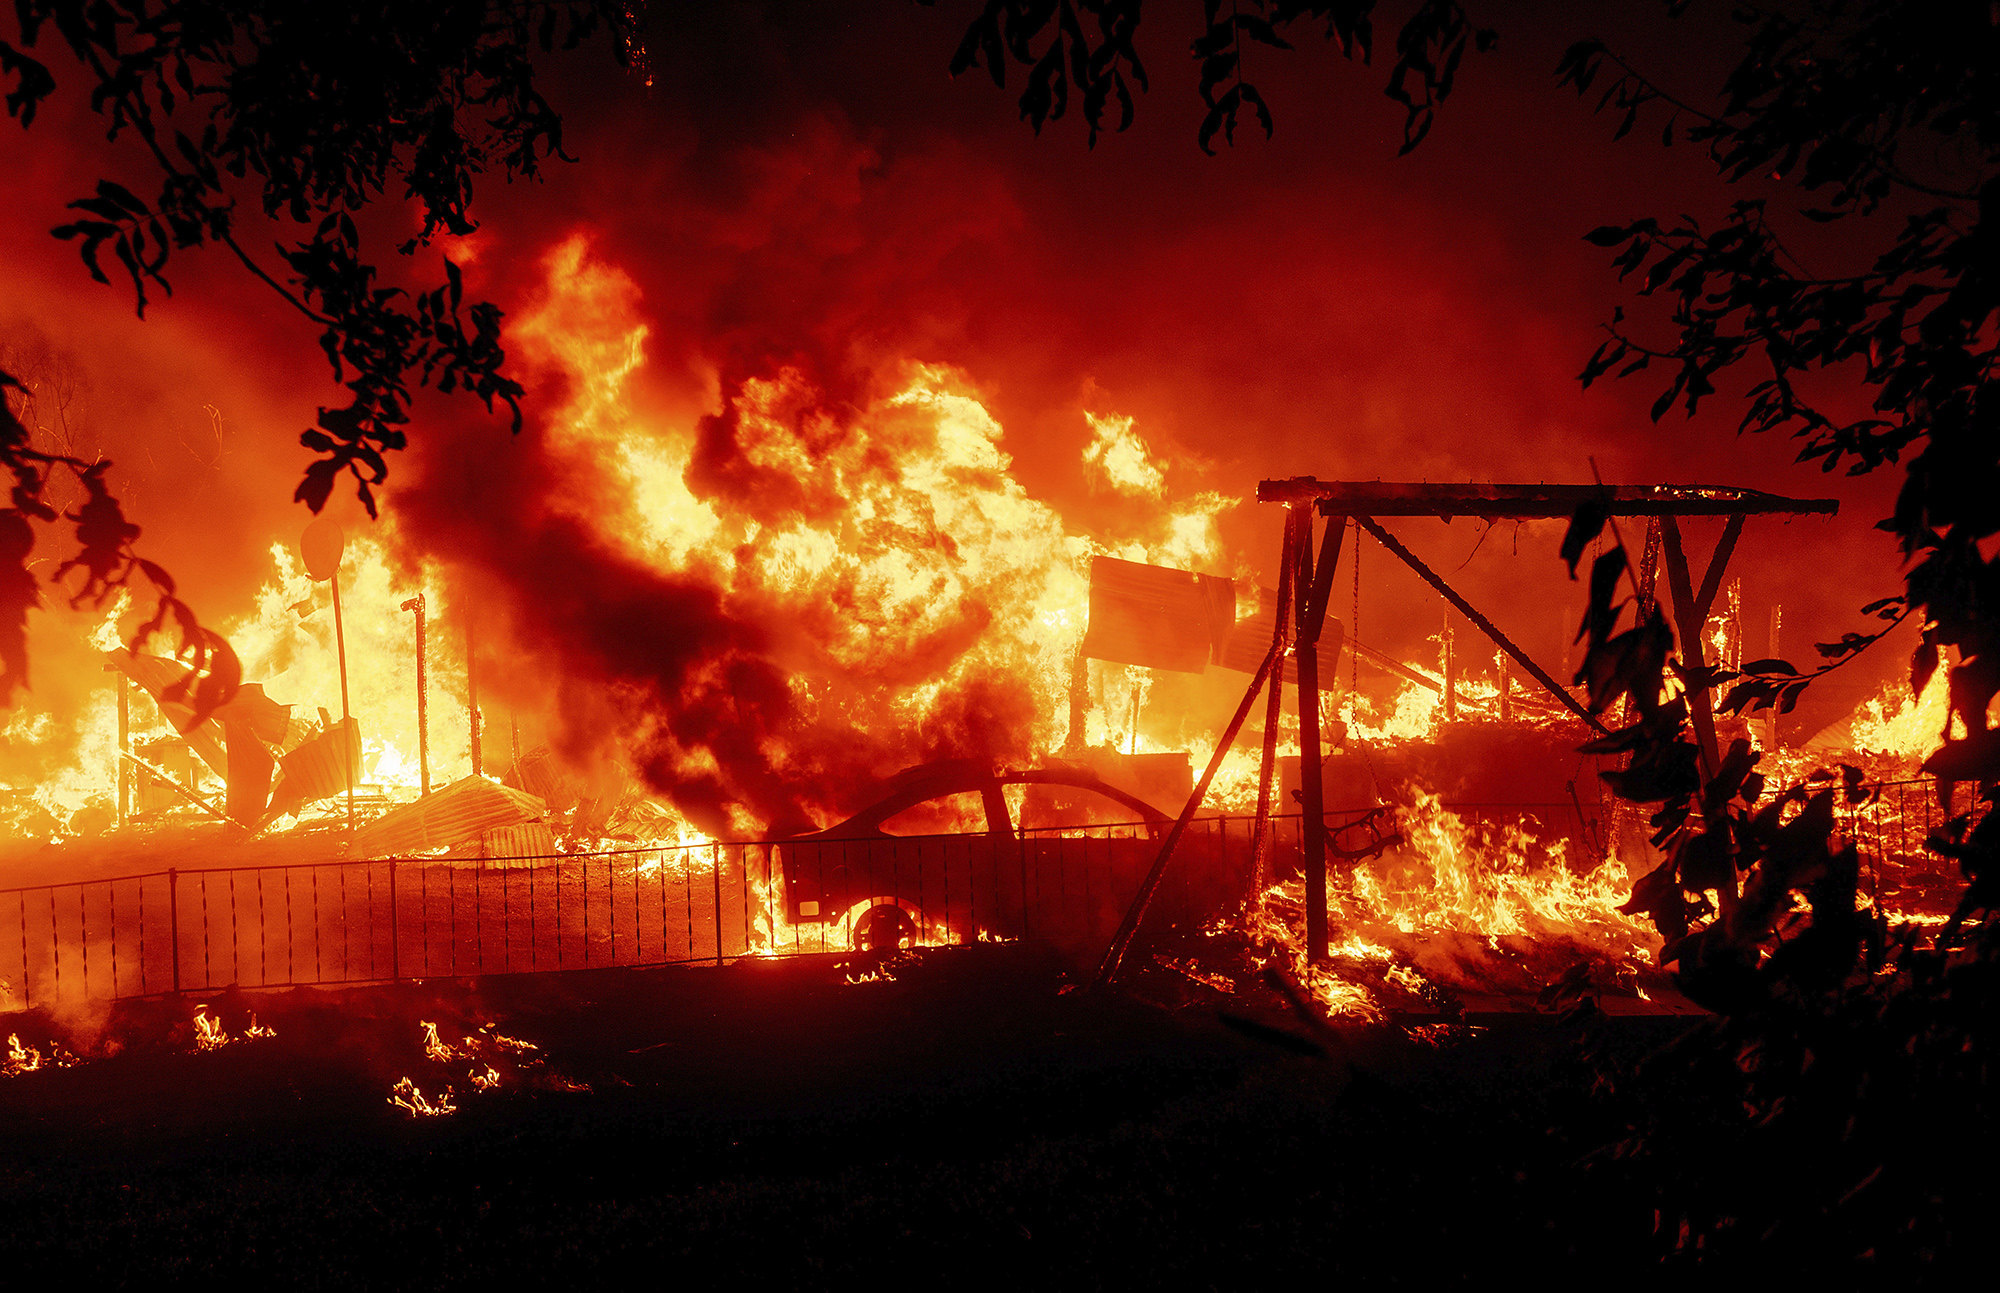 Flames consume a home and car as the Bear Fire burns through the Berry Creek area of Butte County, Calif., on Wednesday, Sept. 9, 2020. The blaze, part of the lightning-sparked North Complex, expanded at a critical rate of spread as winds buffeted the region. (AP Photo/Noah Berger)